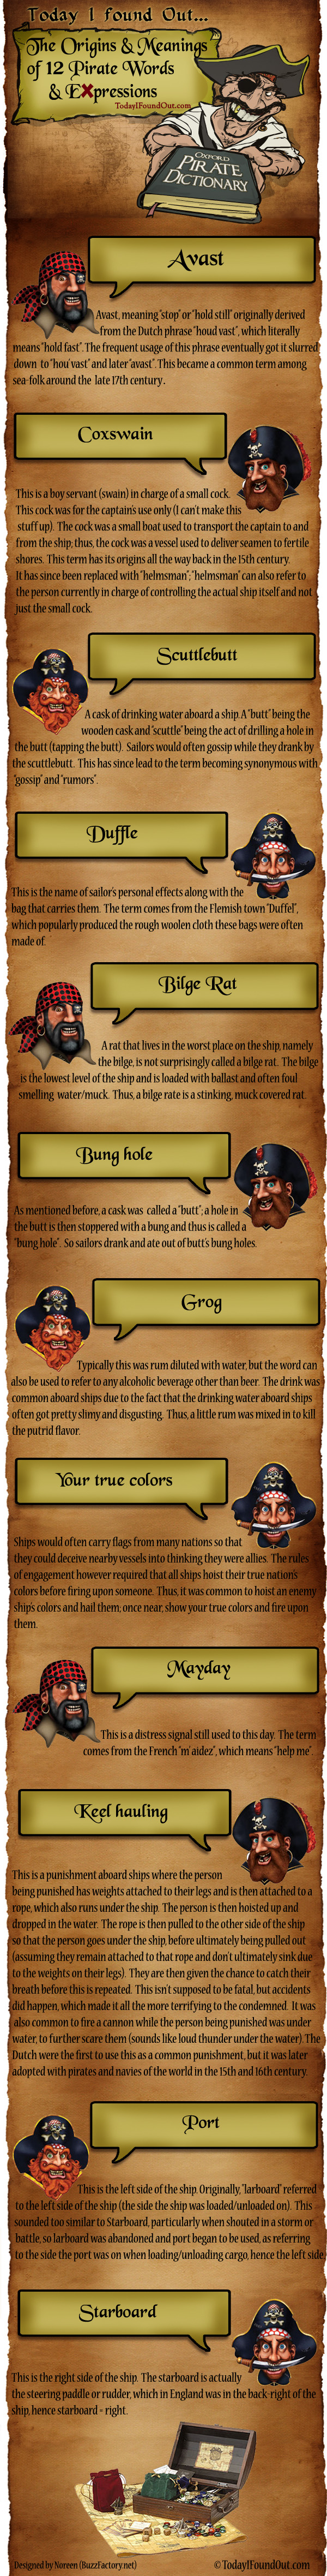 Origins of Pirate Words and Phrases, you are seeing the infographic on the site muwasalat.com, it is on pirate words